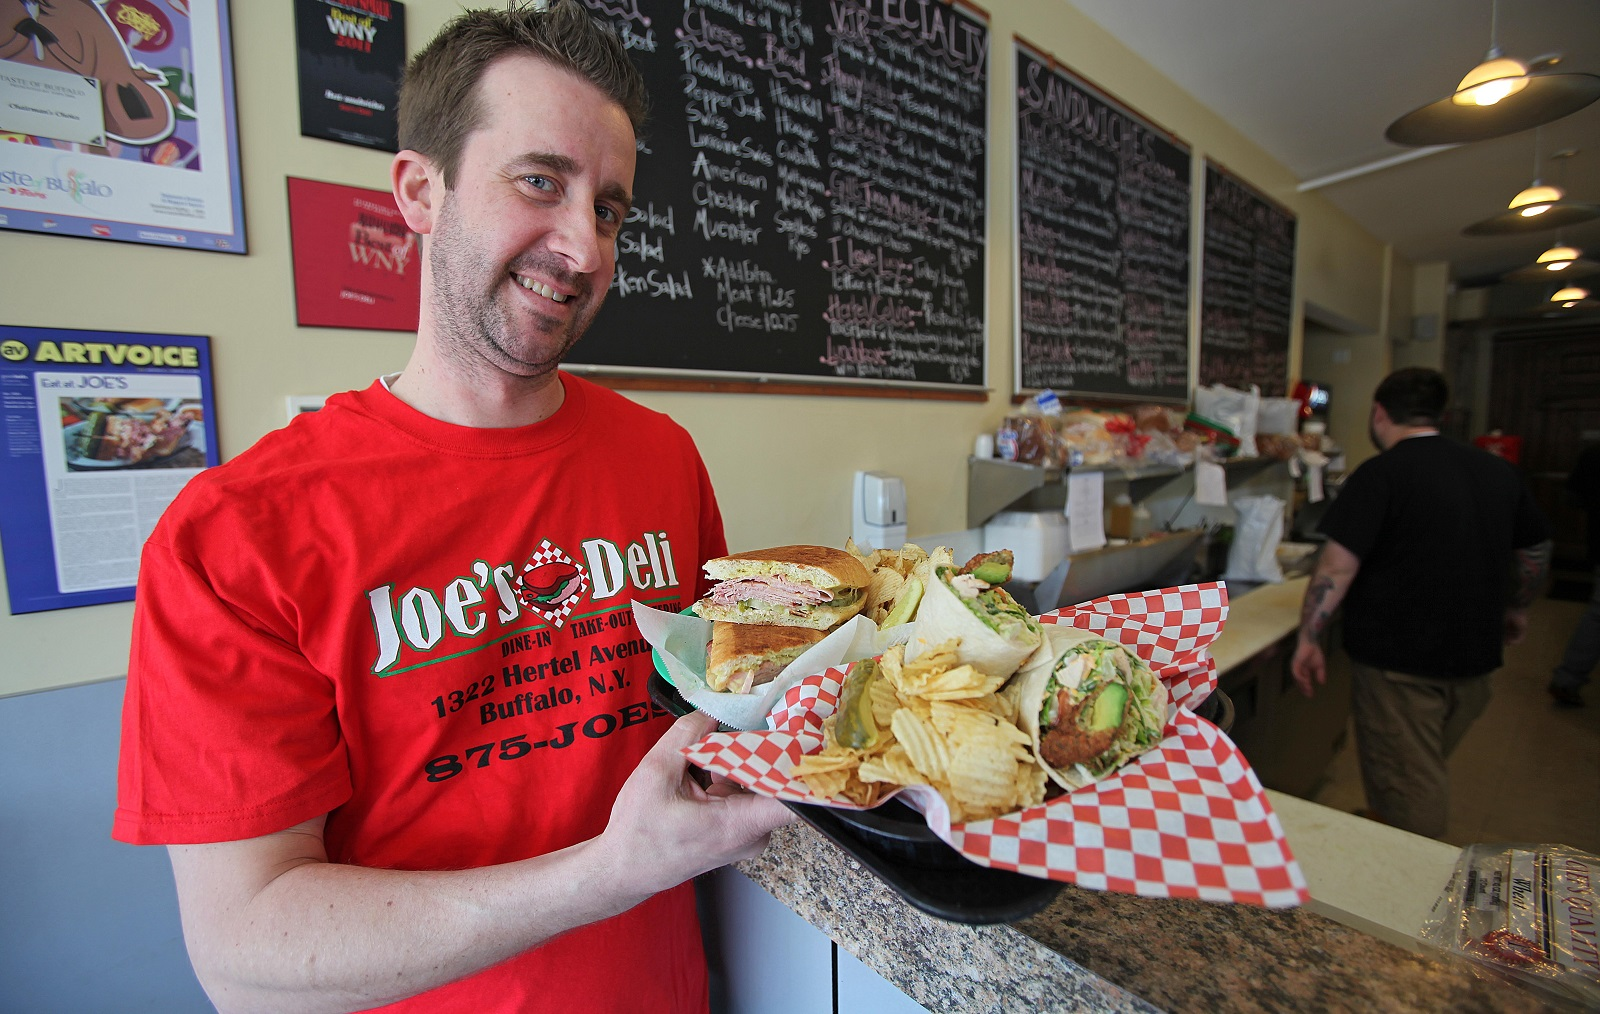 Joe's Deli owner Joseph Lyons will open a new location in the Northtowns. (Robert Kirkham/Buffalo News file photo)